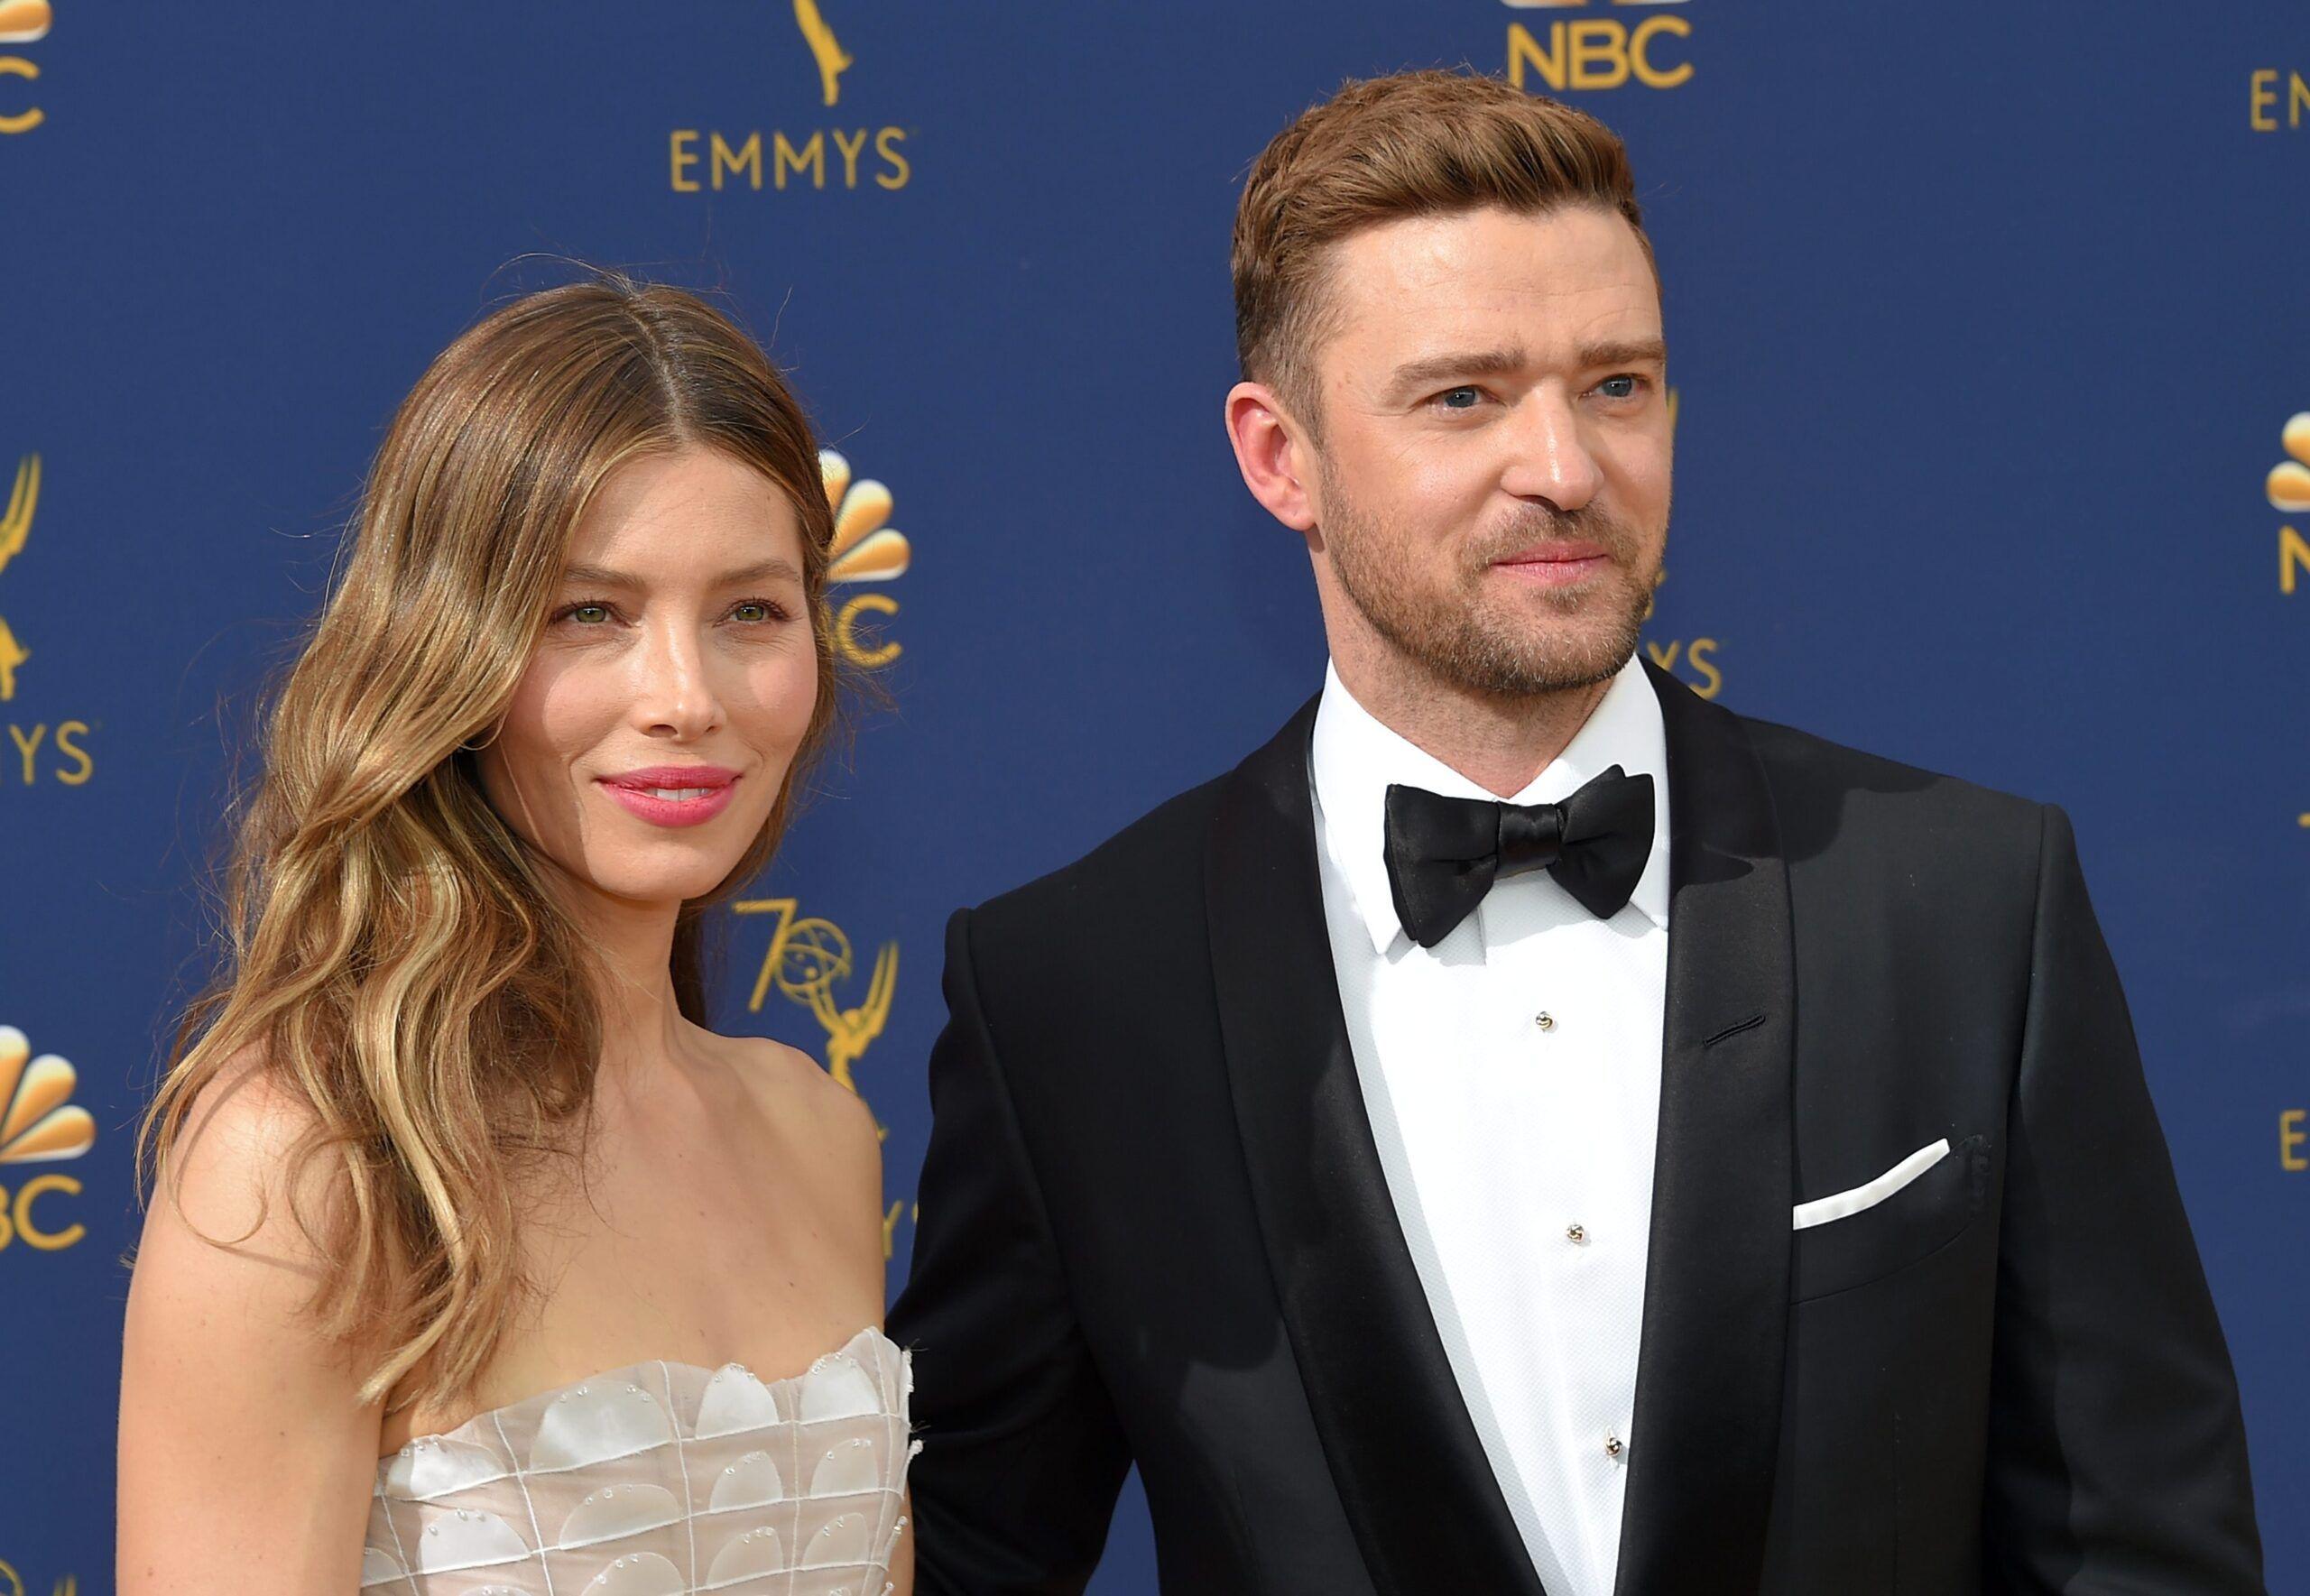 Justin Timberlake Confirms He And Wife Jessica Biel Welcomed Second Child